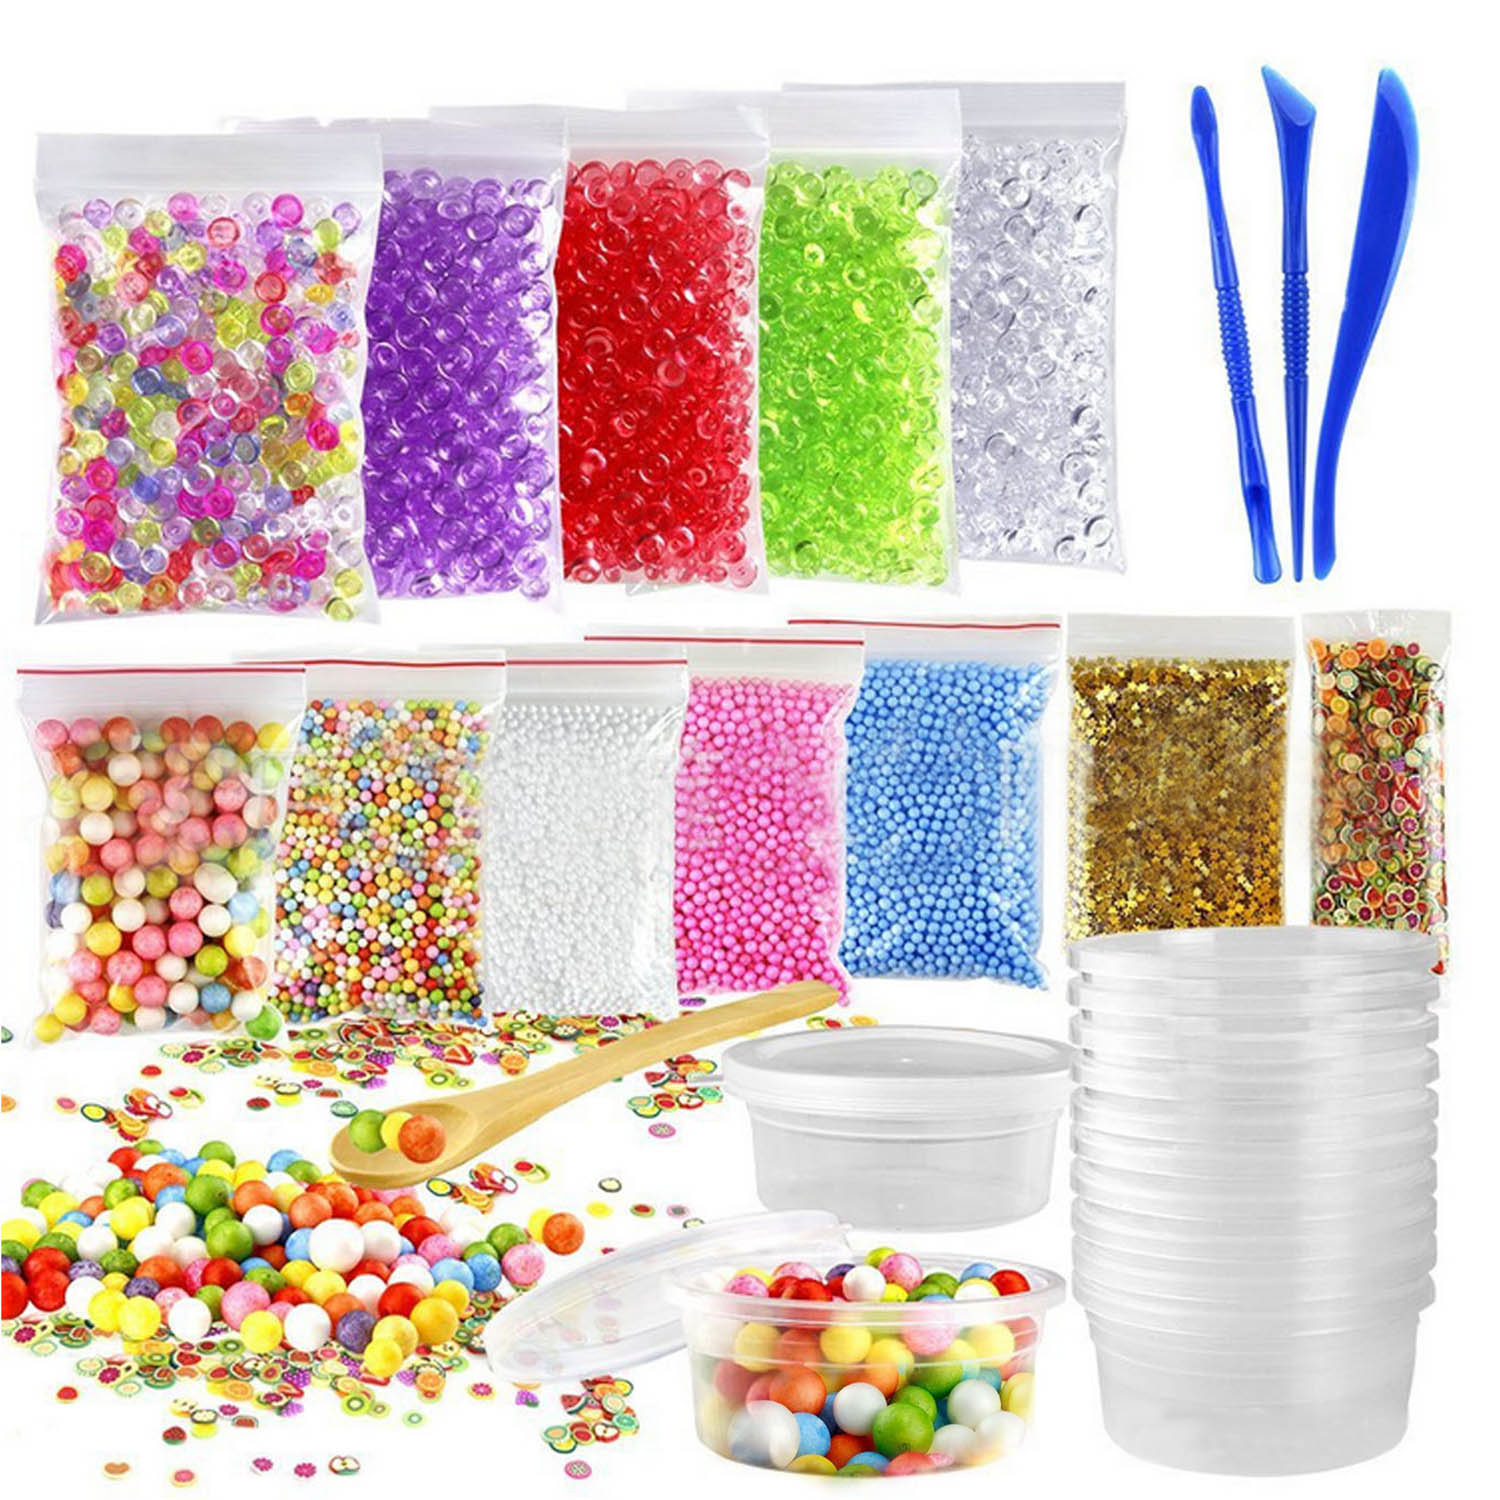 Colorful Beads Foam Balls Fruit Slice Gold Slime Tool Container Kit for Slime DIY Craft  ...